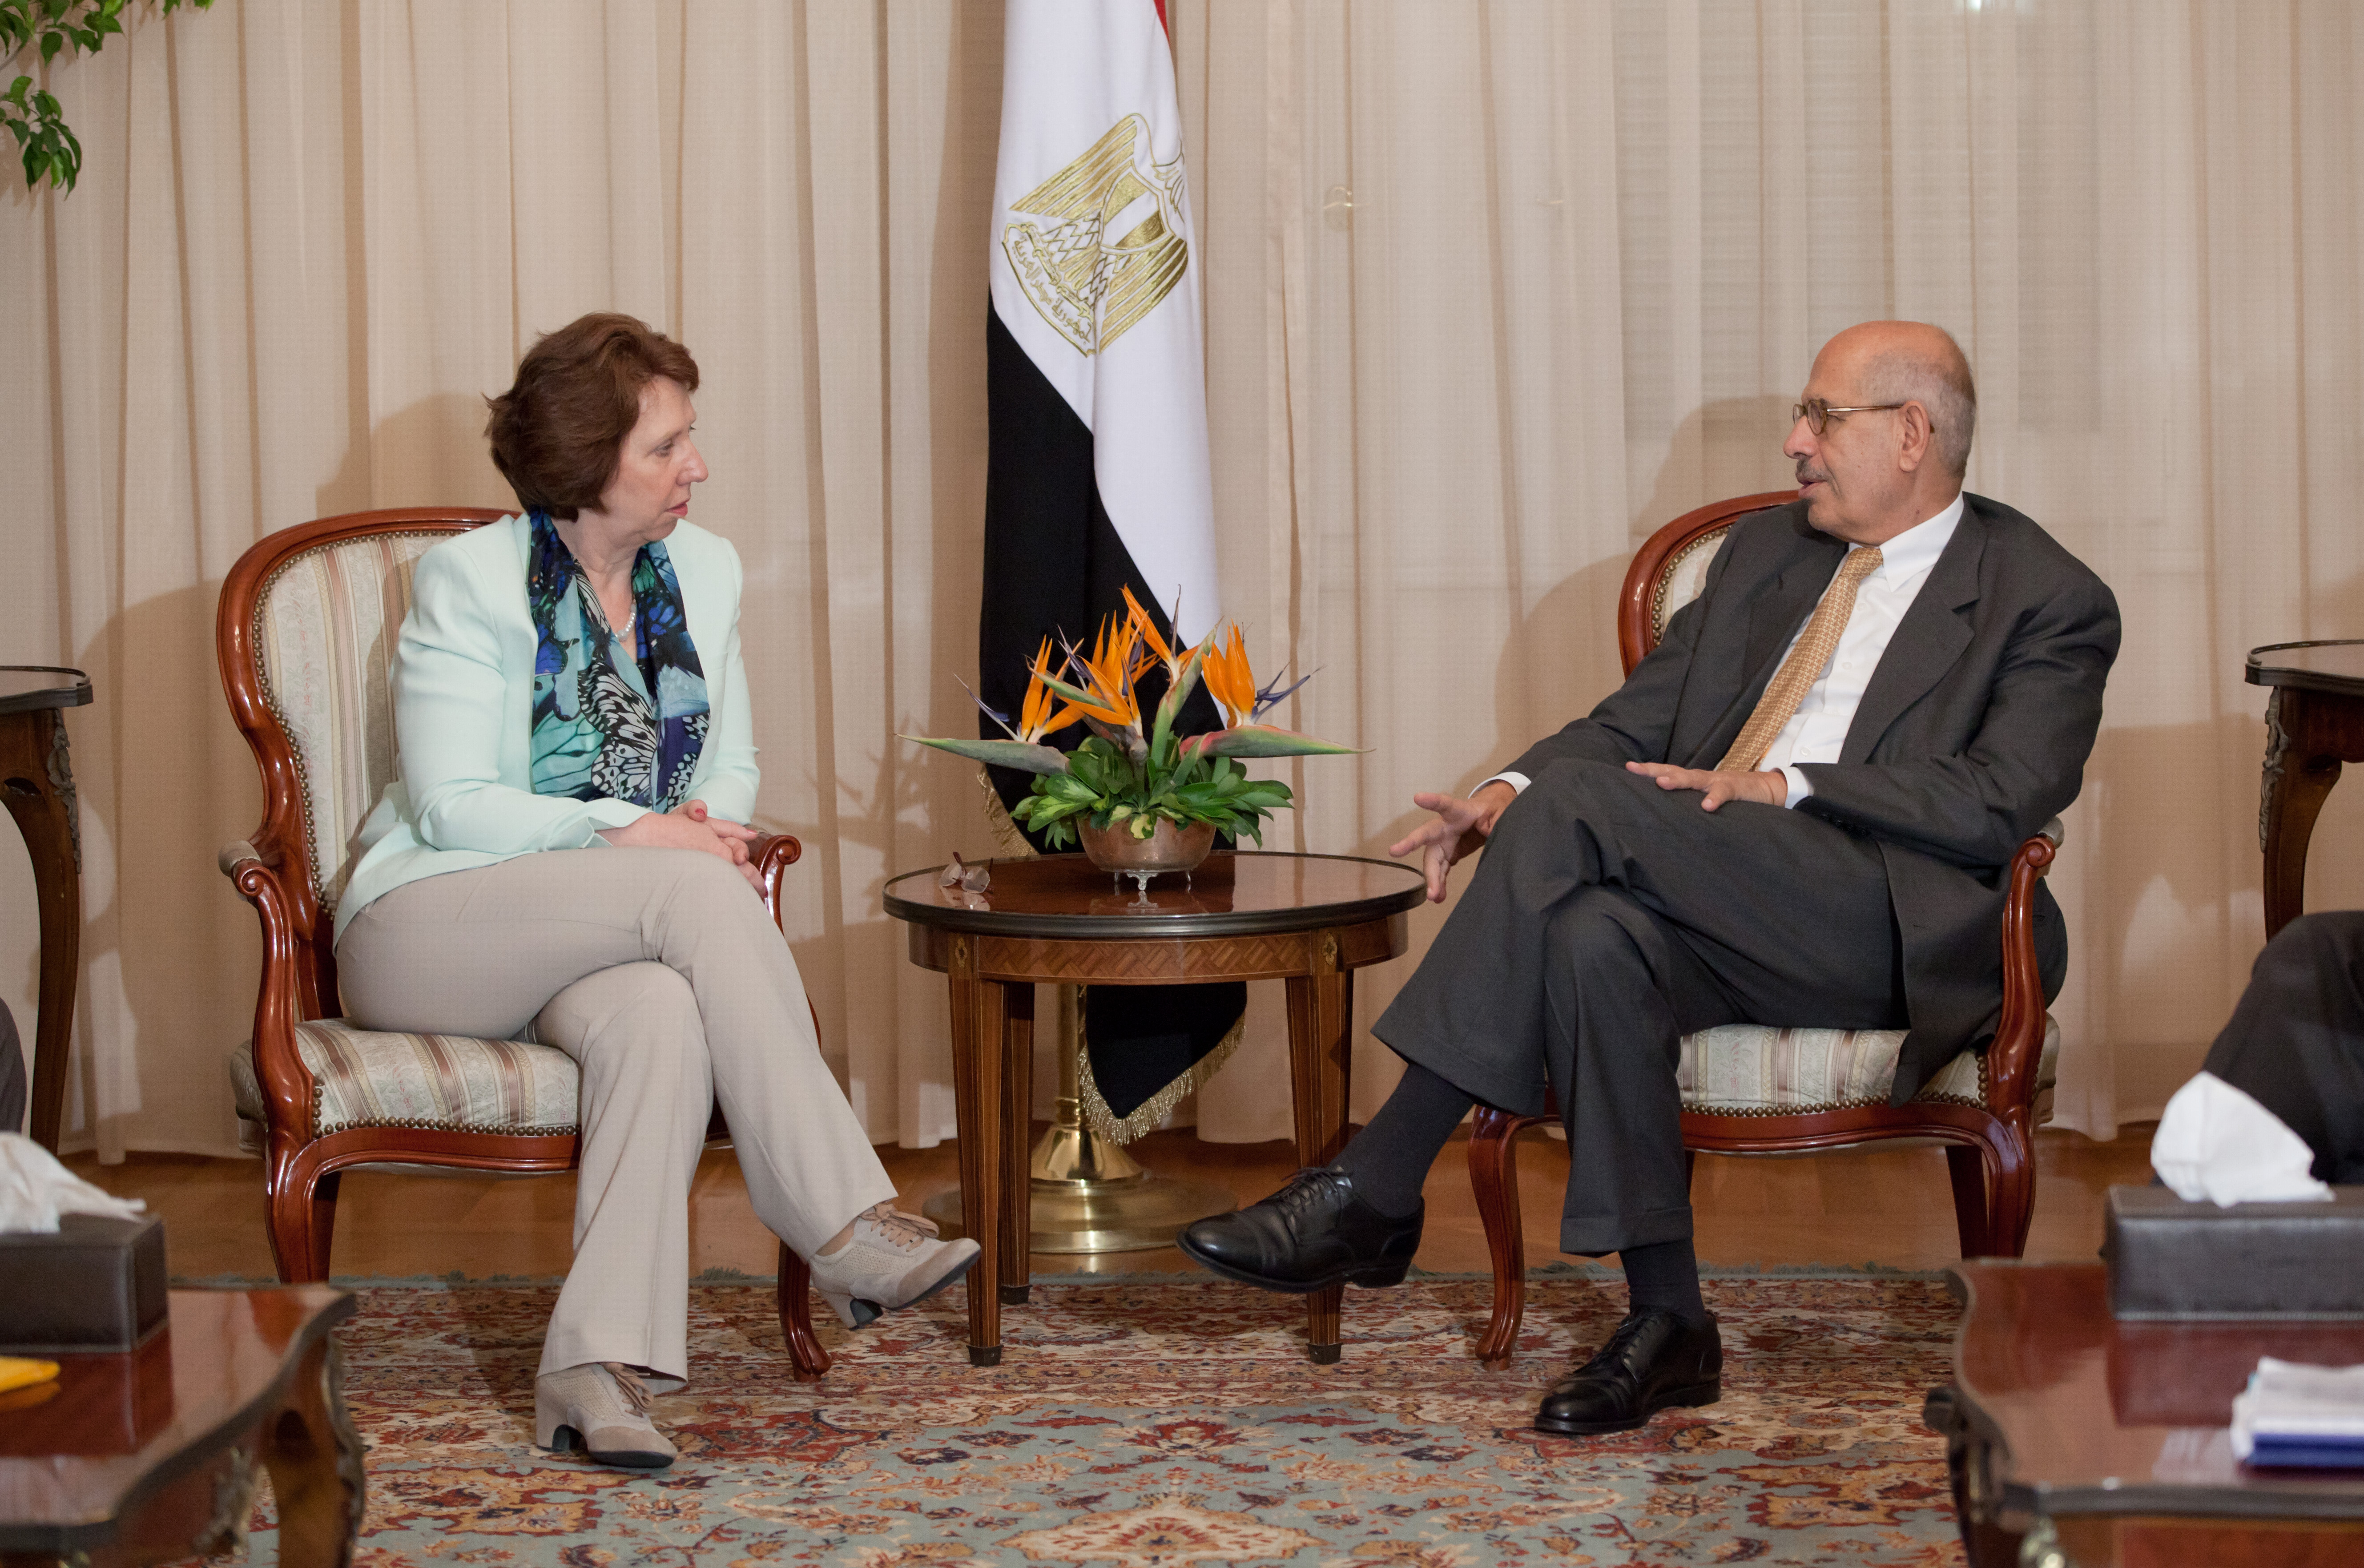 On Wednesday July 17th, 2013, High Representative of the Union for Foreign Affairs and Security Policy Catherine Ashton meets with Egypt's vice president, Mohamed ElBaradei. (Photo courtesy of European Union Delegation to Egypt\Pedro Costa )